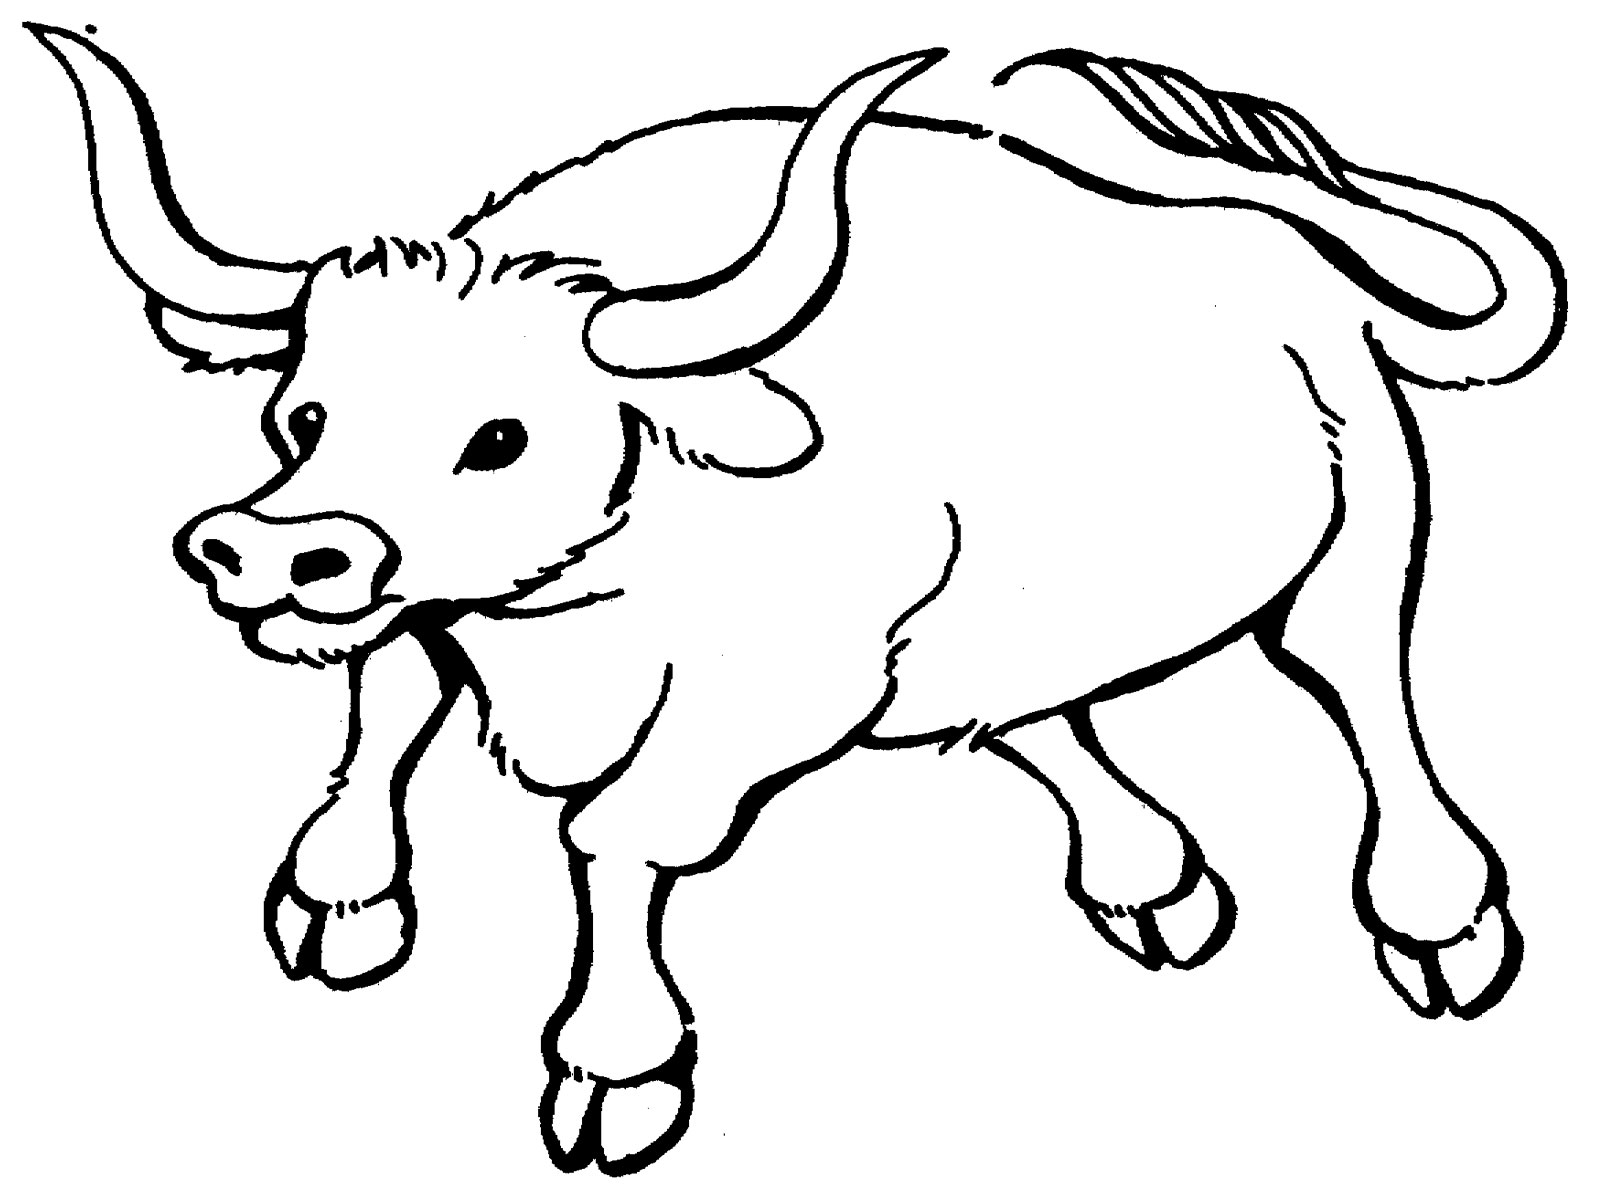 1600x1200 Bull Coloring Page, Bull Printable Coloring Pages